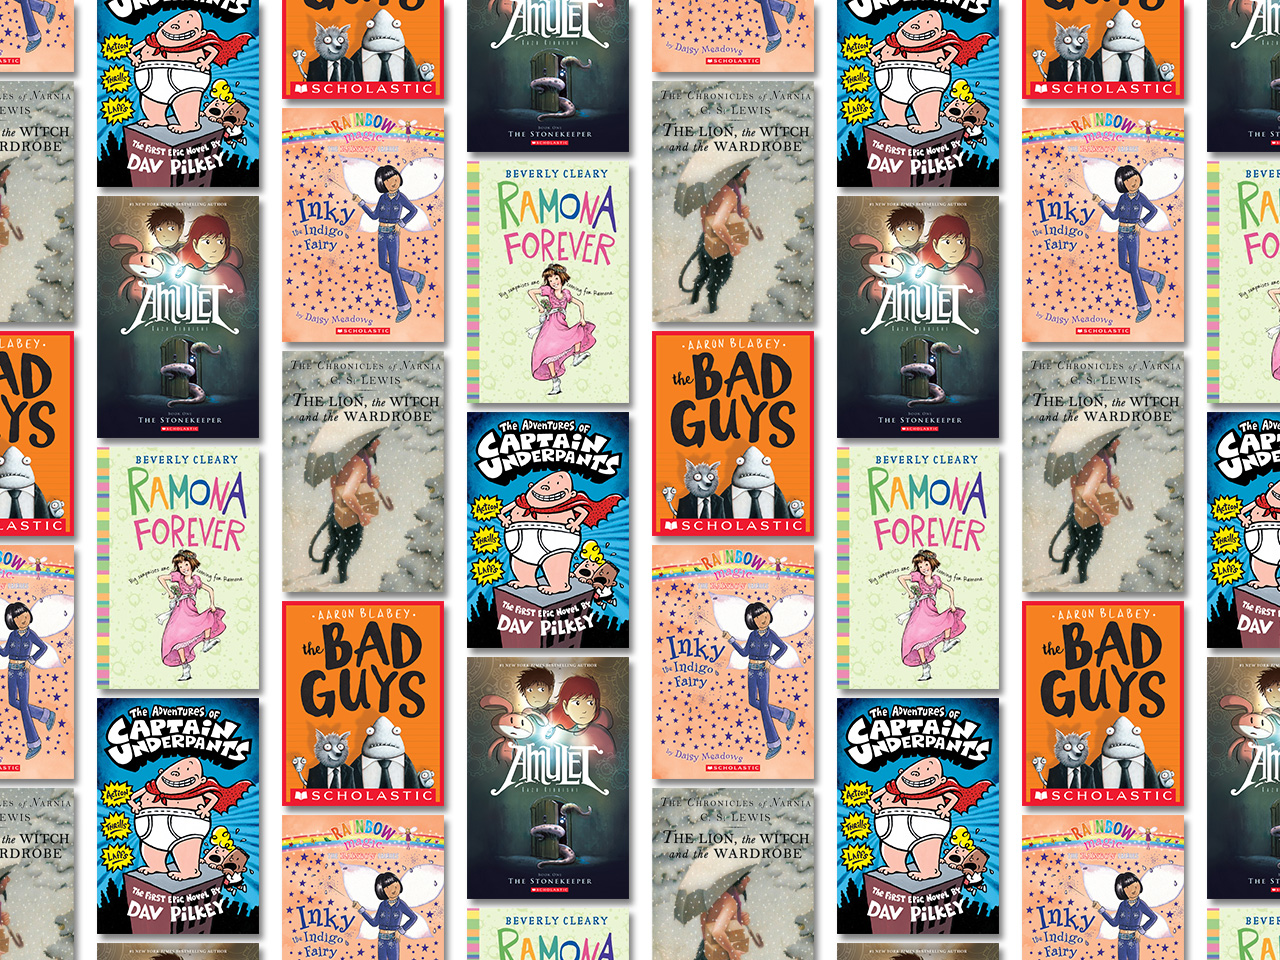 Collage of chapter book covers